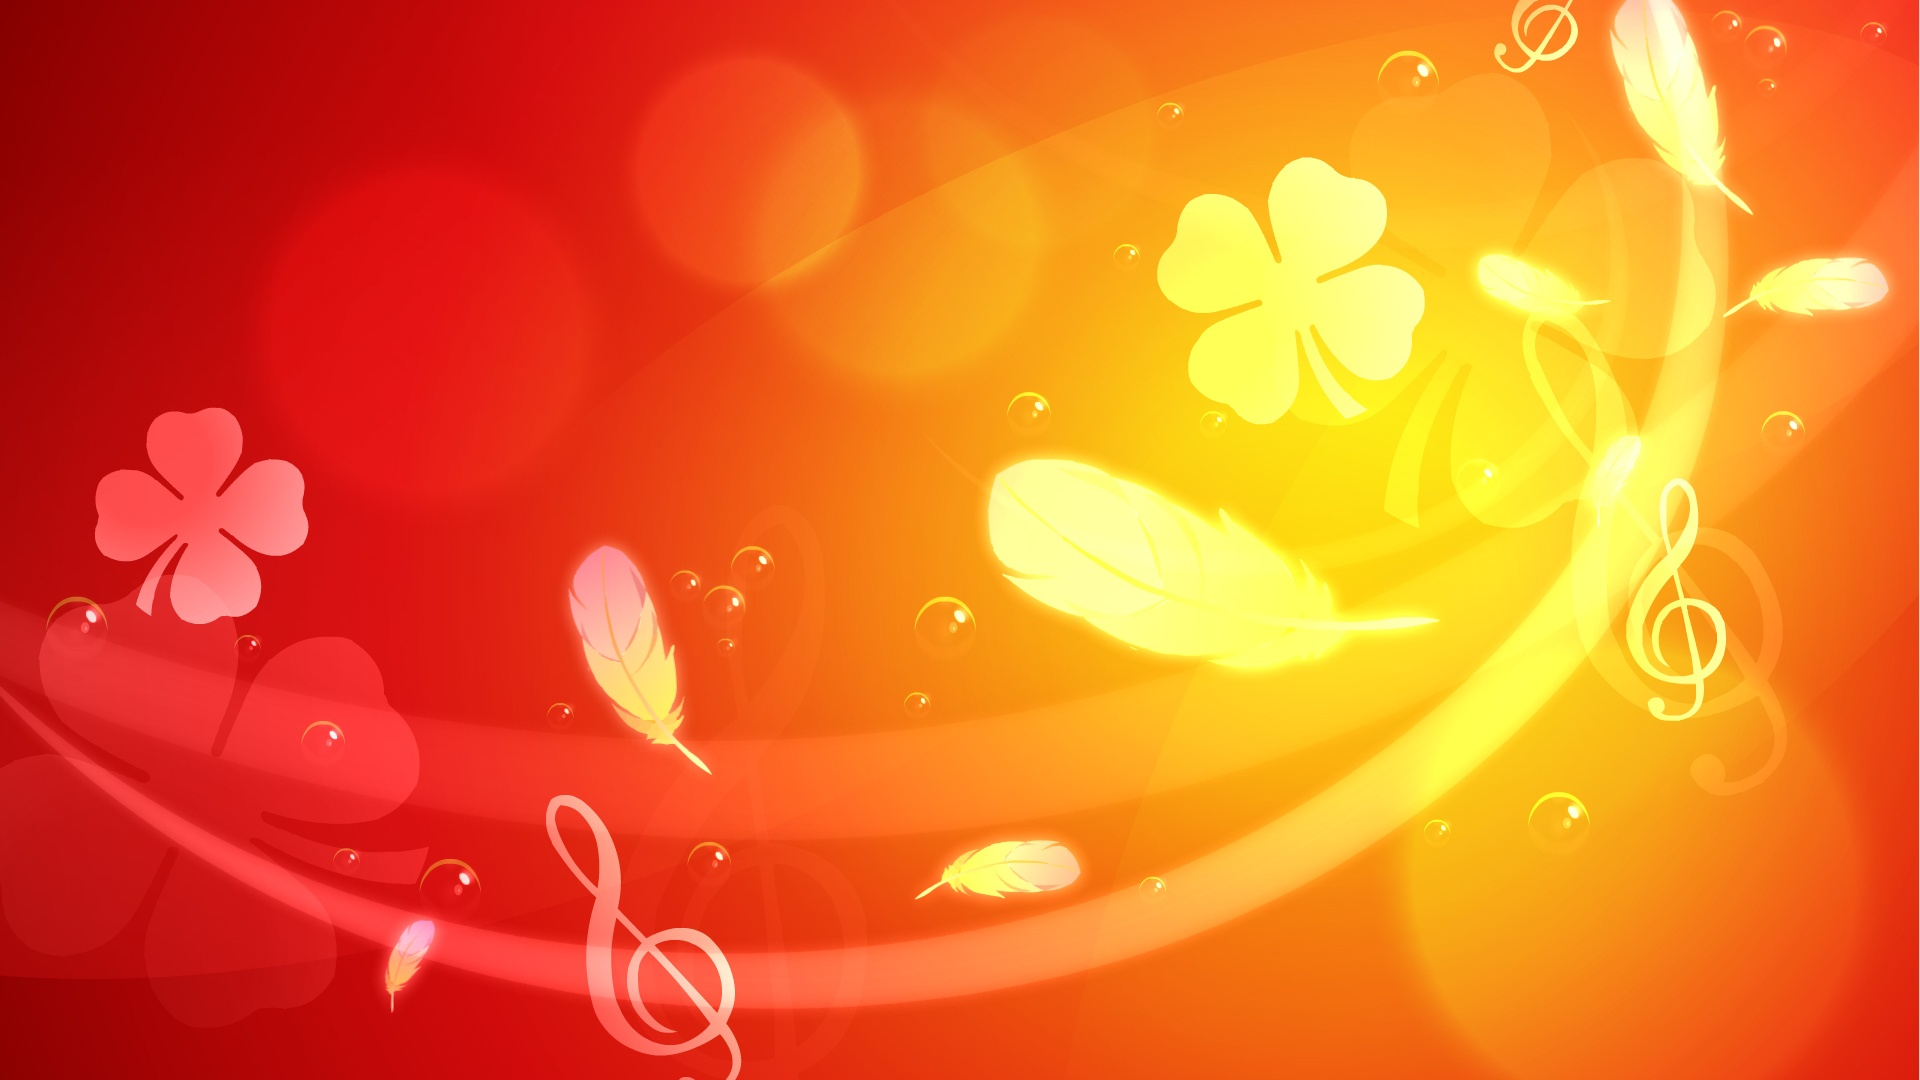 Free Floral Light Orange Backgrounds For PowerPoint - Music PPT ...